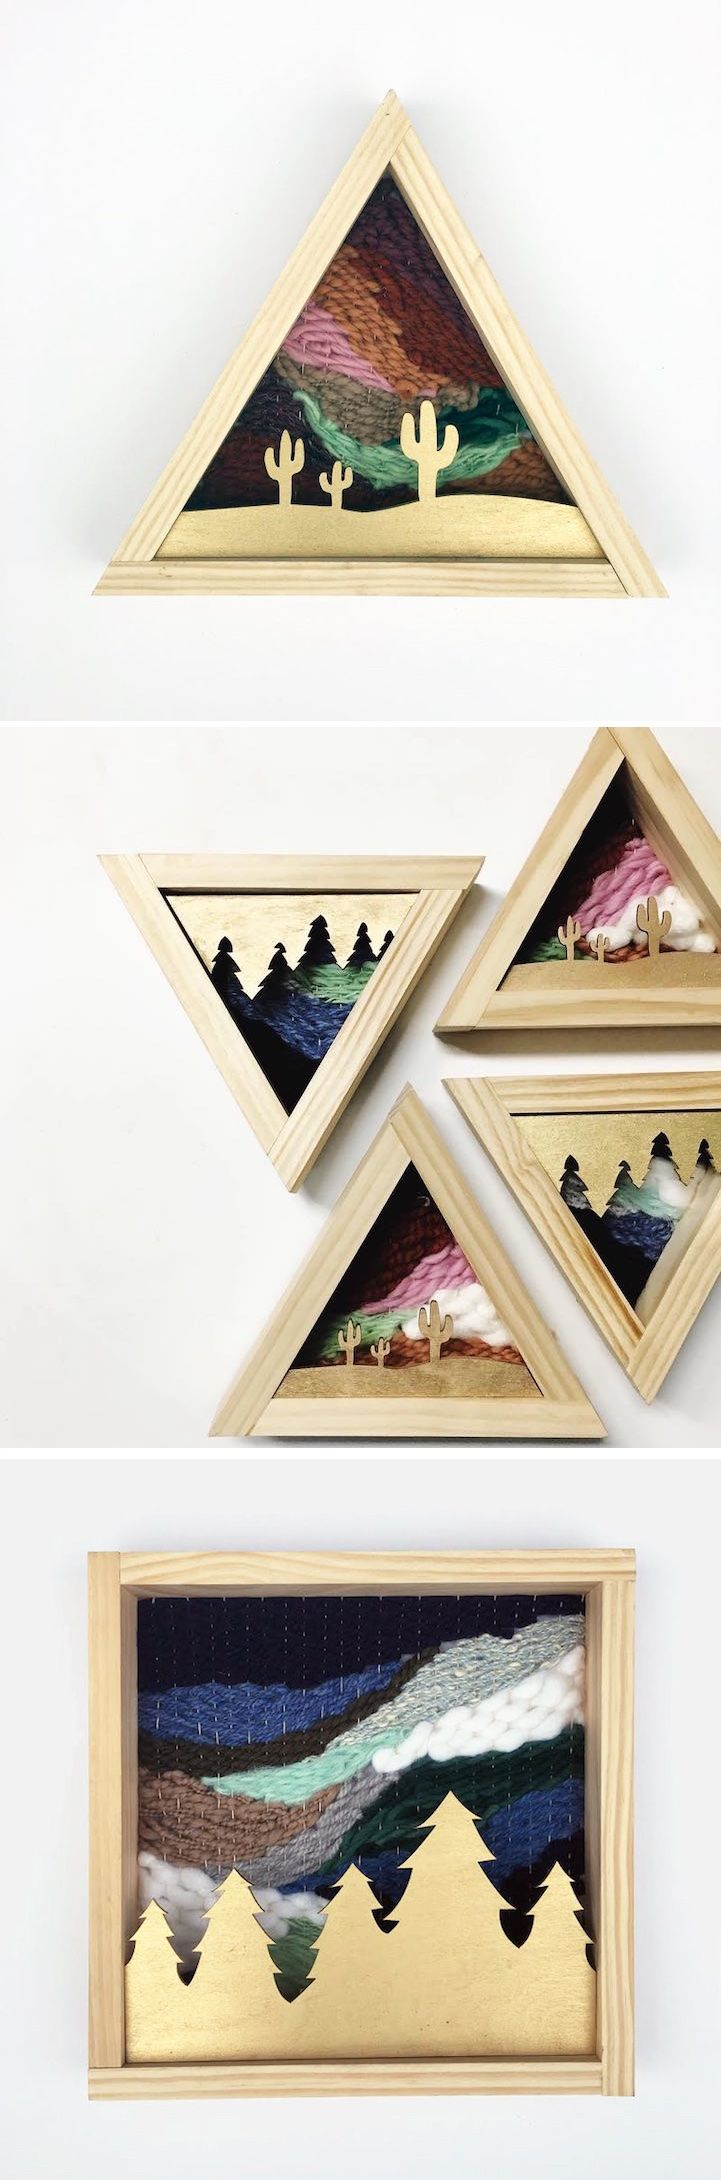 Savannah Teel of Savvie Studio creates small original wall hangings that speak to the beauty of nature, from the forests to the desert.